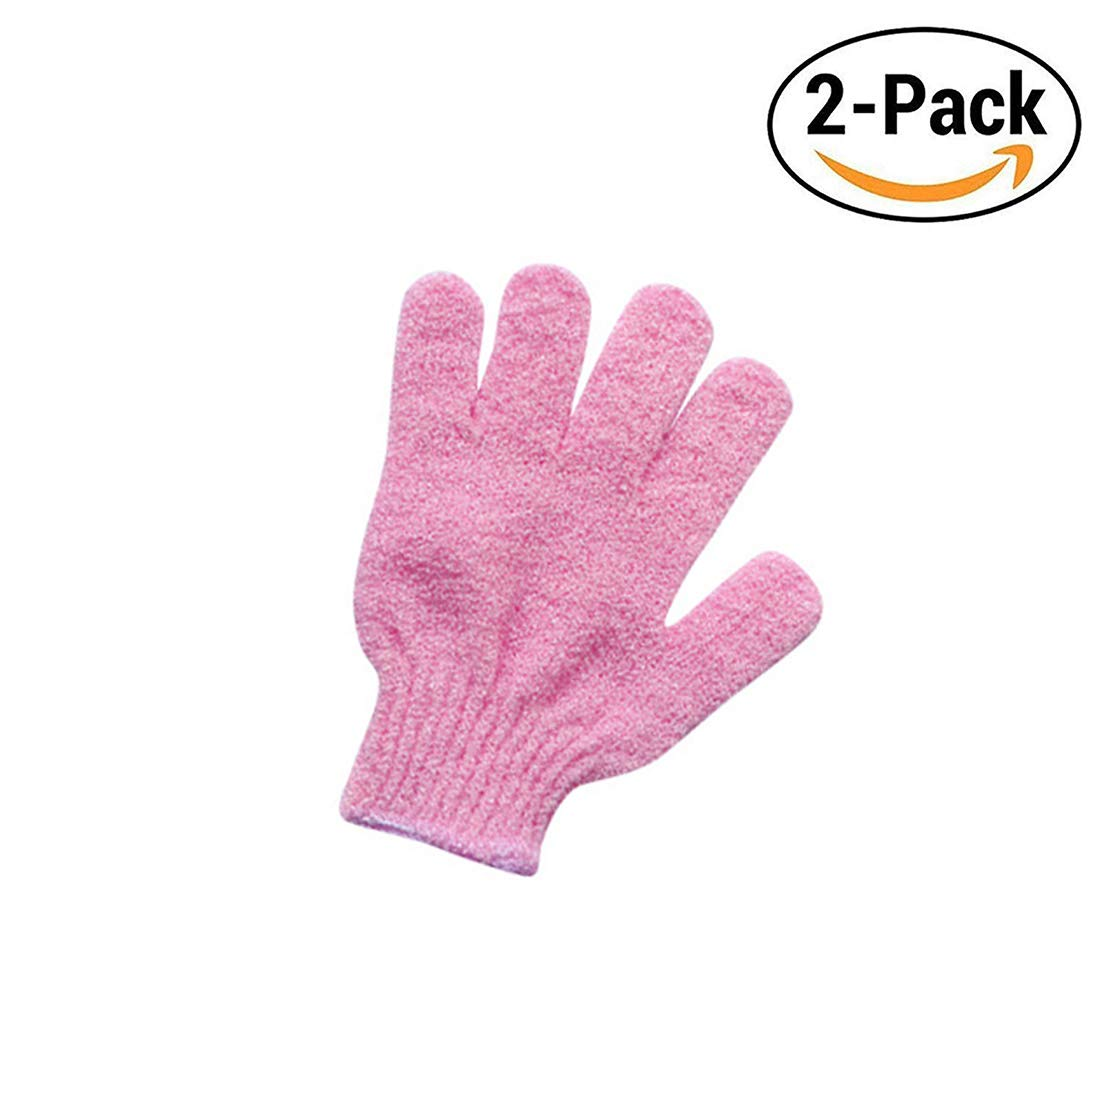 Exfoliating Bath Gloves of Shower Spa Body Scrub Bath Colorful For Soft Skin and Improves Blood Circulation (Pink) TianZhi